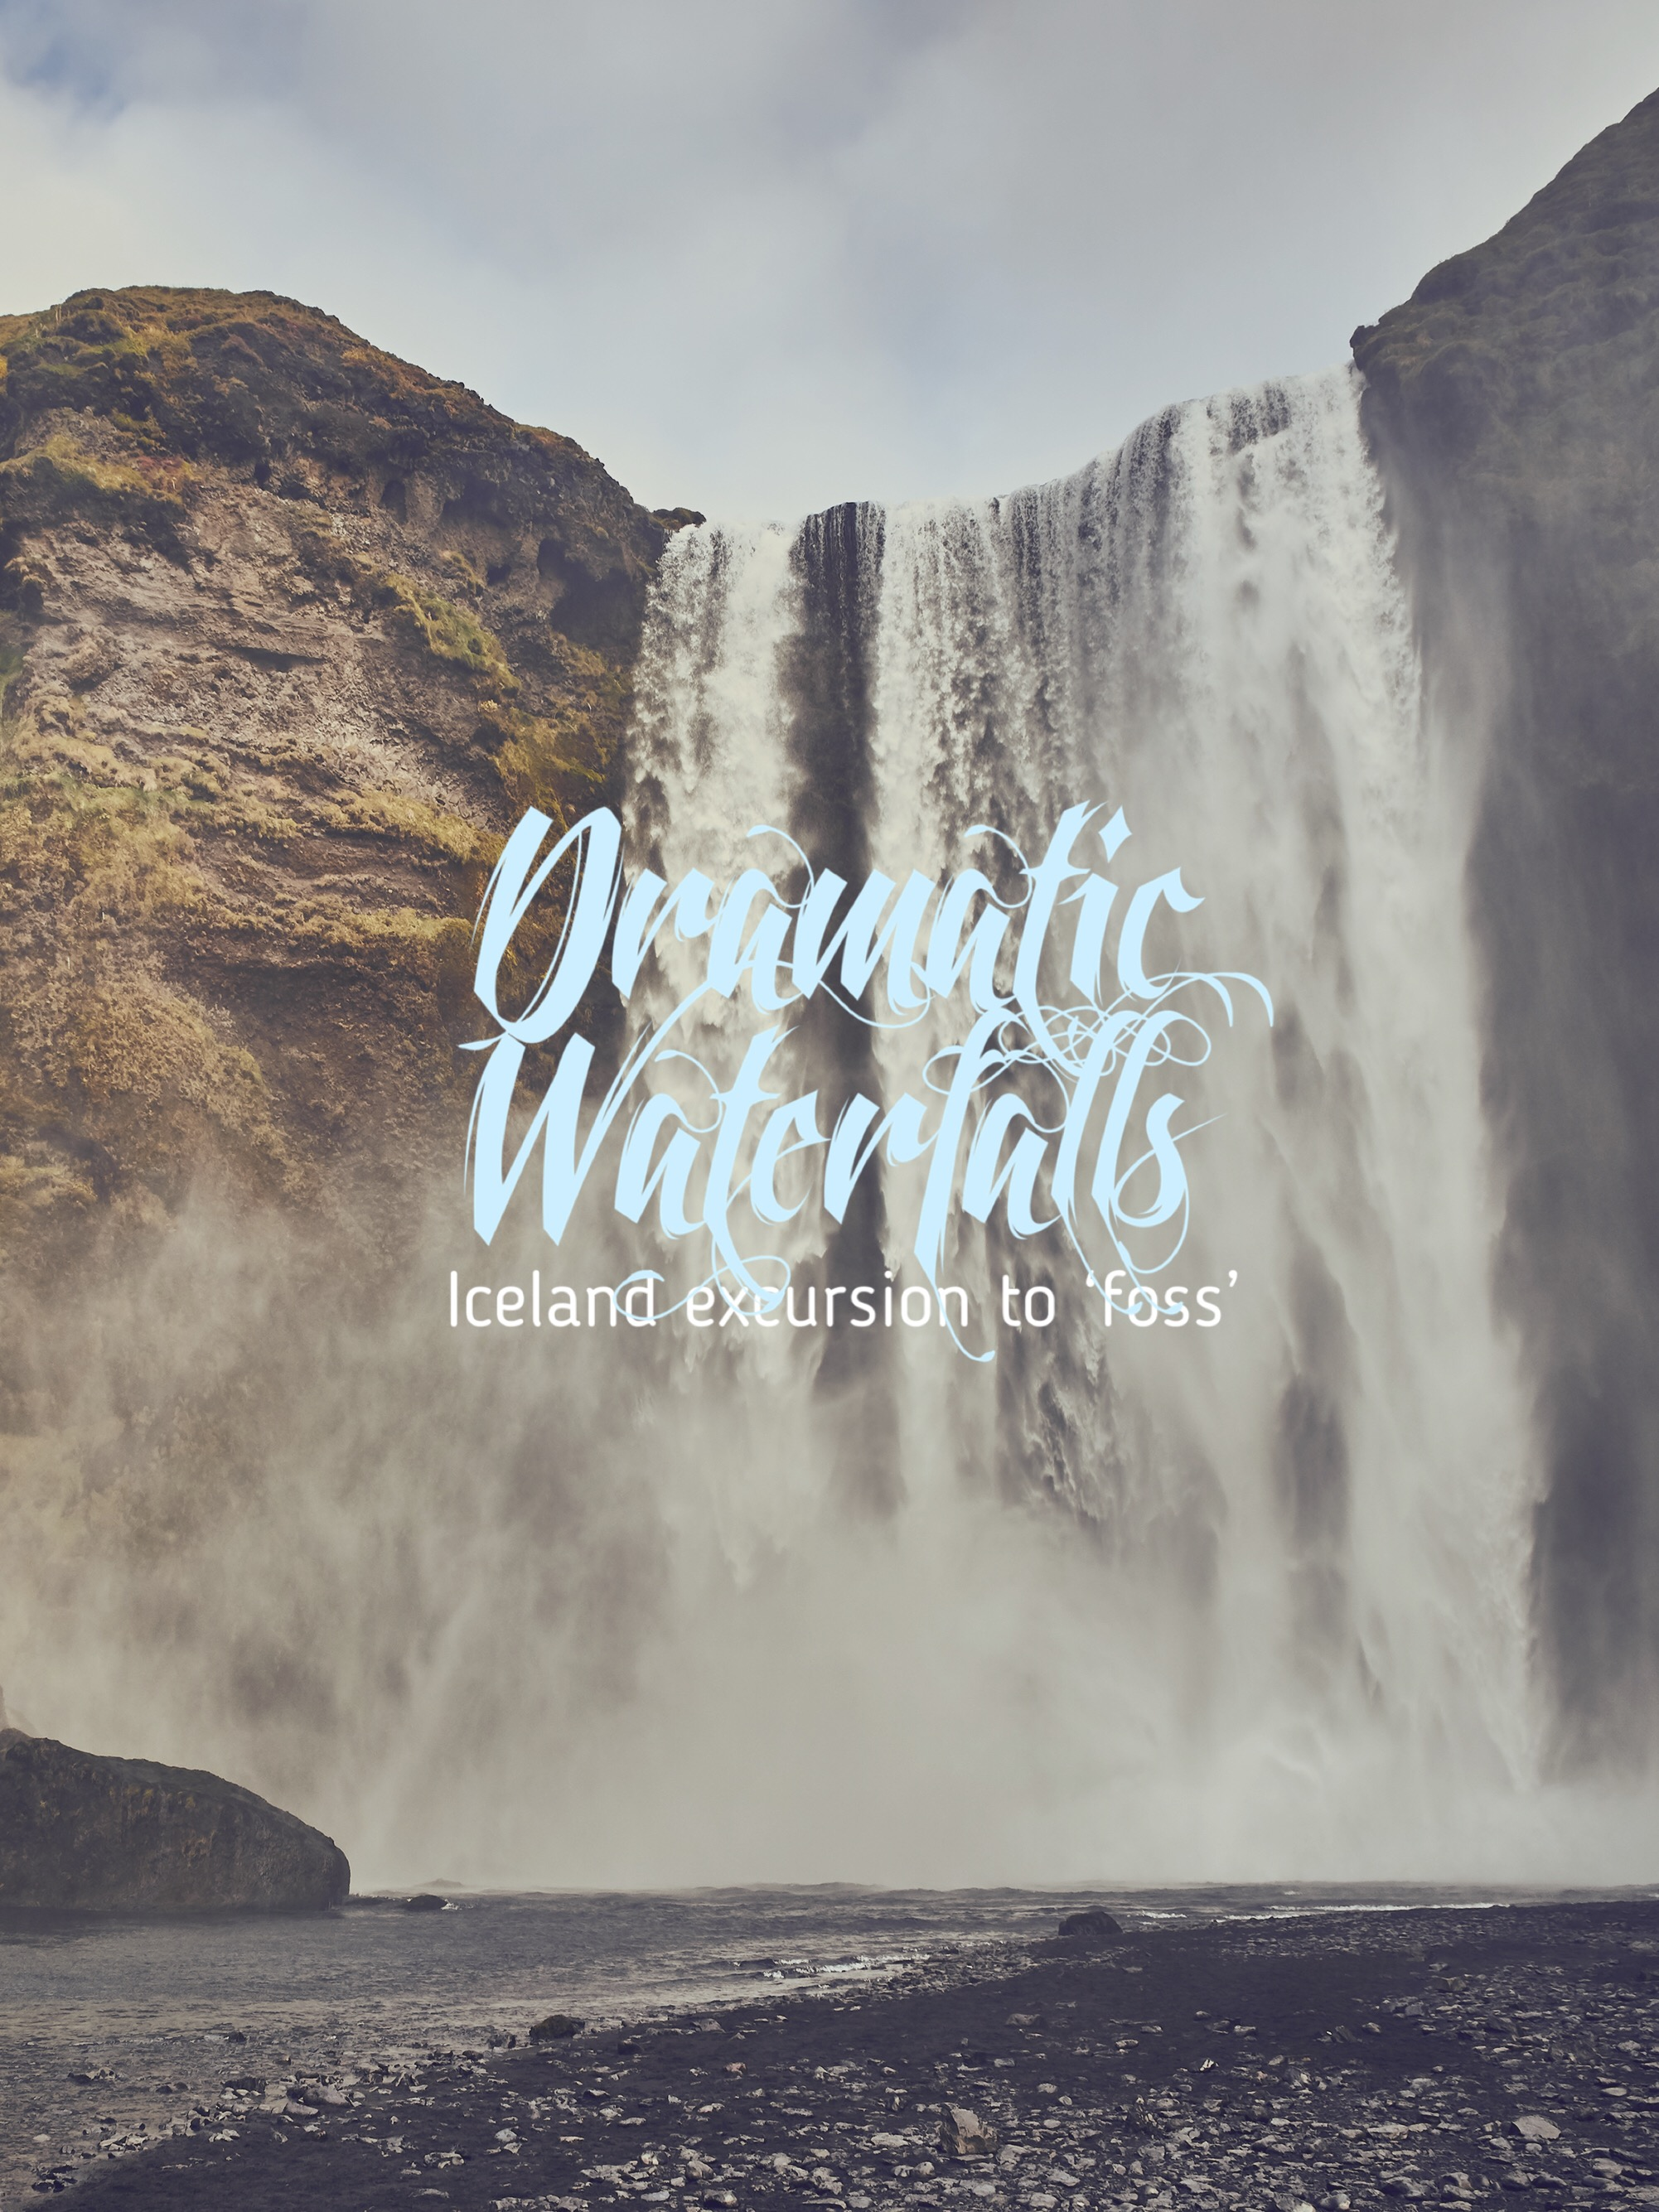 Iceland's Most Beautiful Waterfalls and Their Mythologies